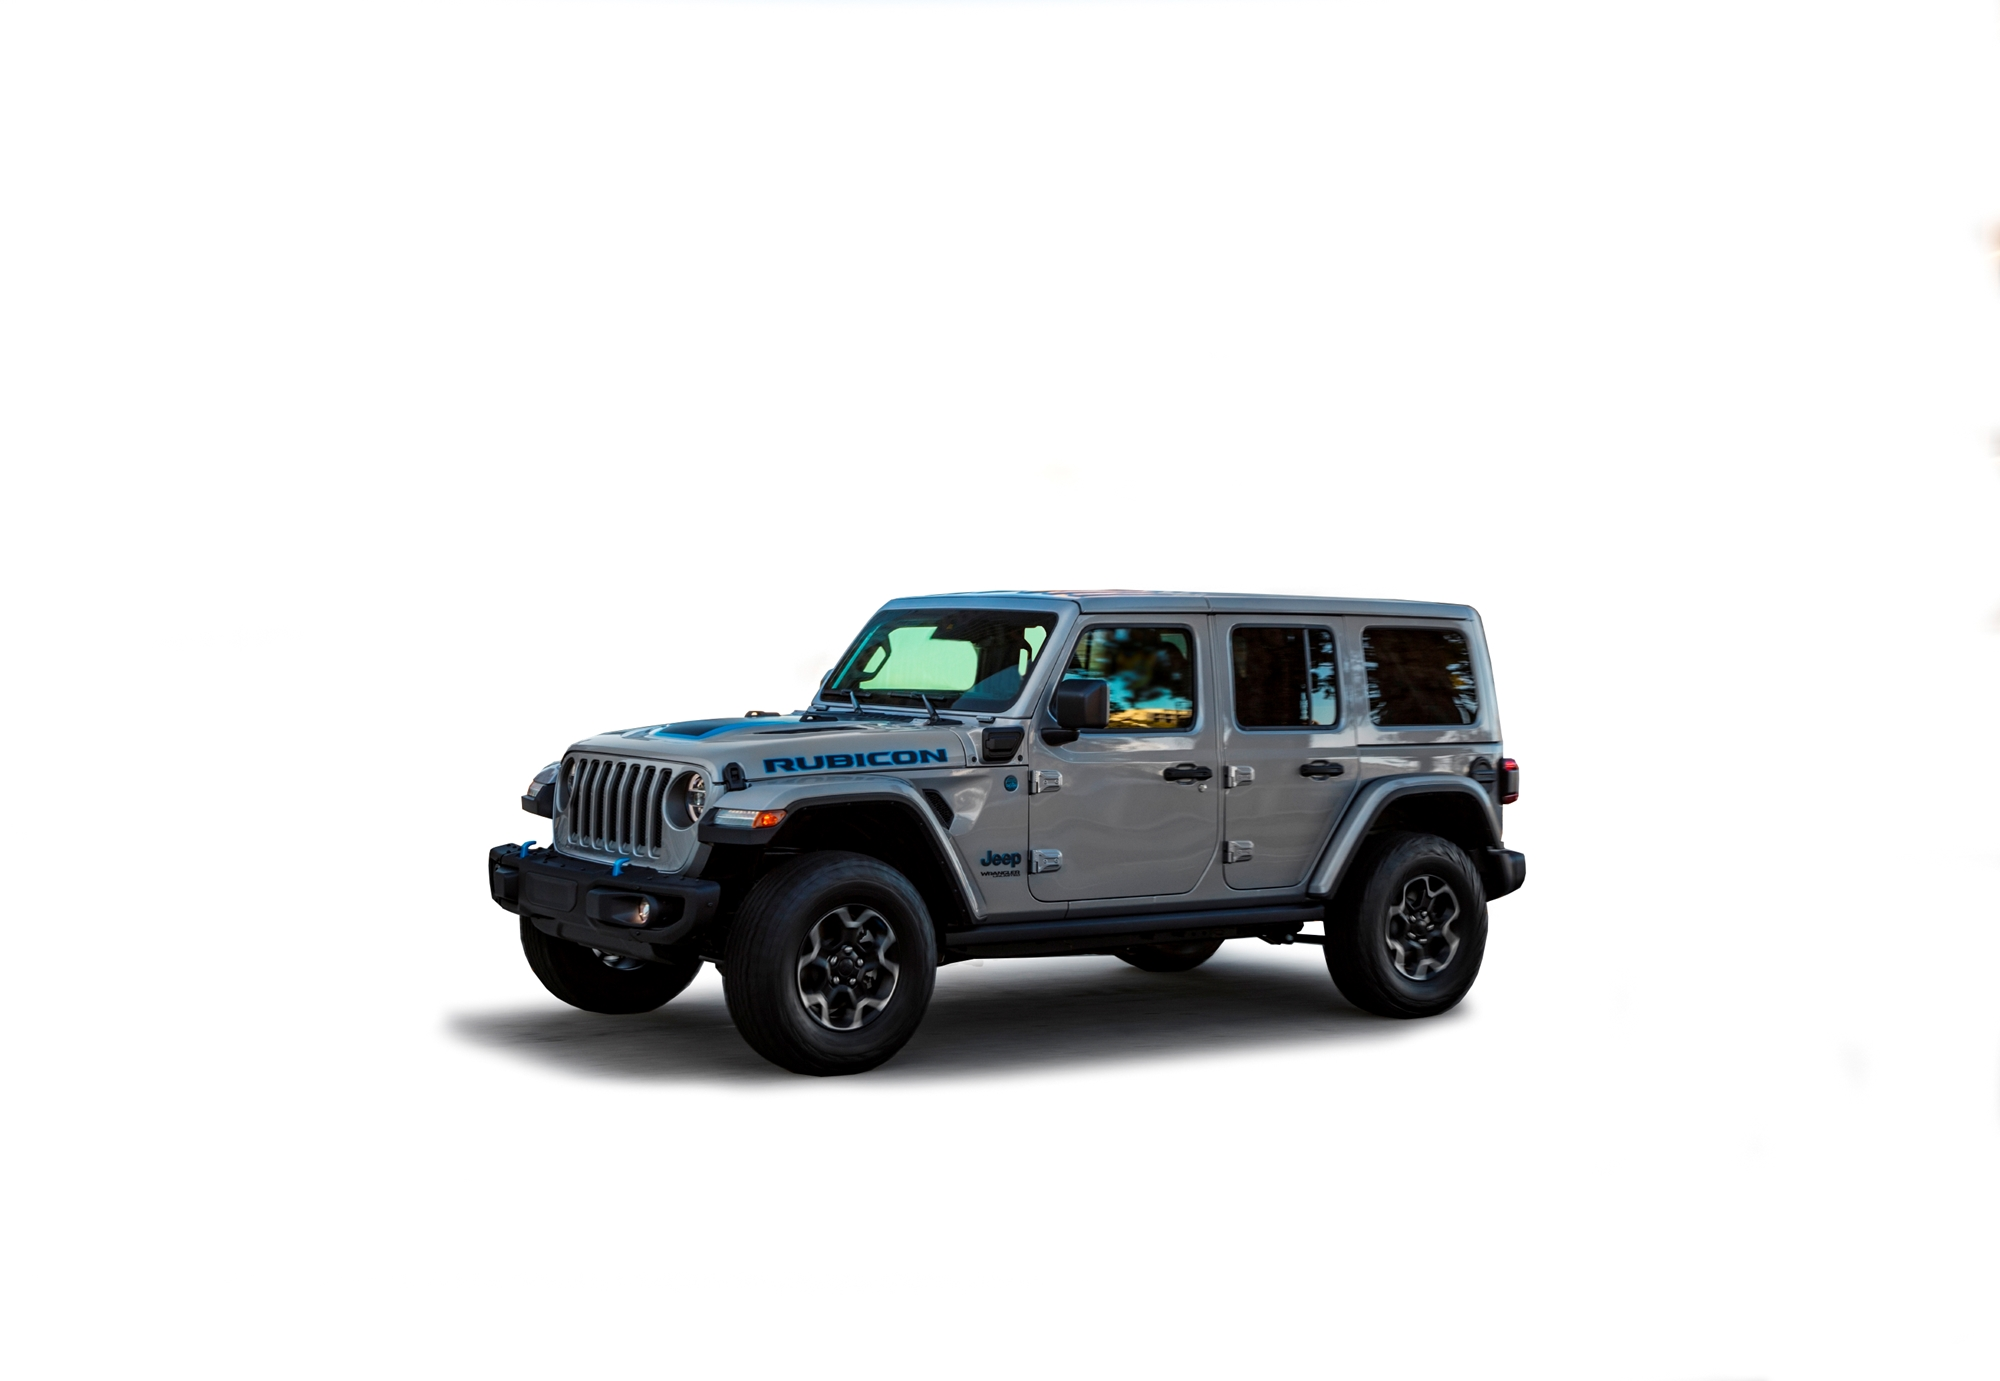 2021 jeep wrangler rubicon 4xe full specs, features and